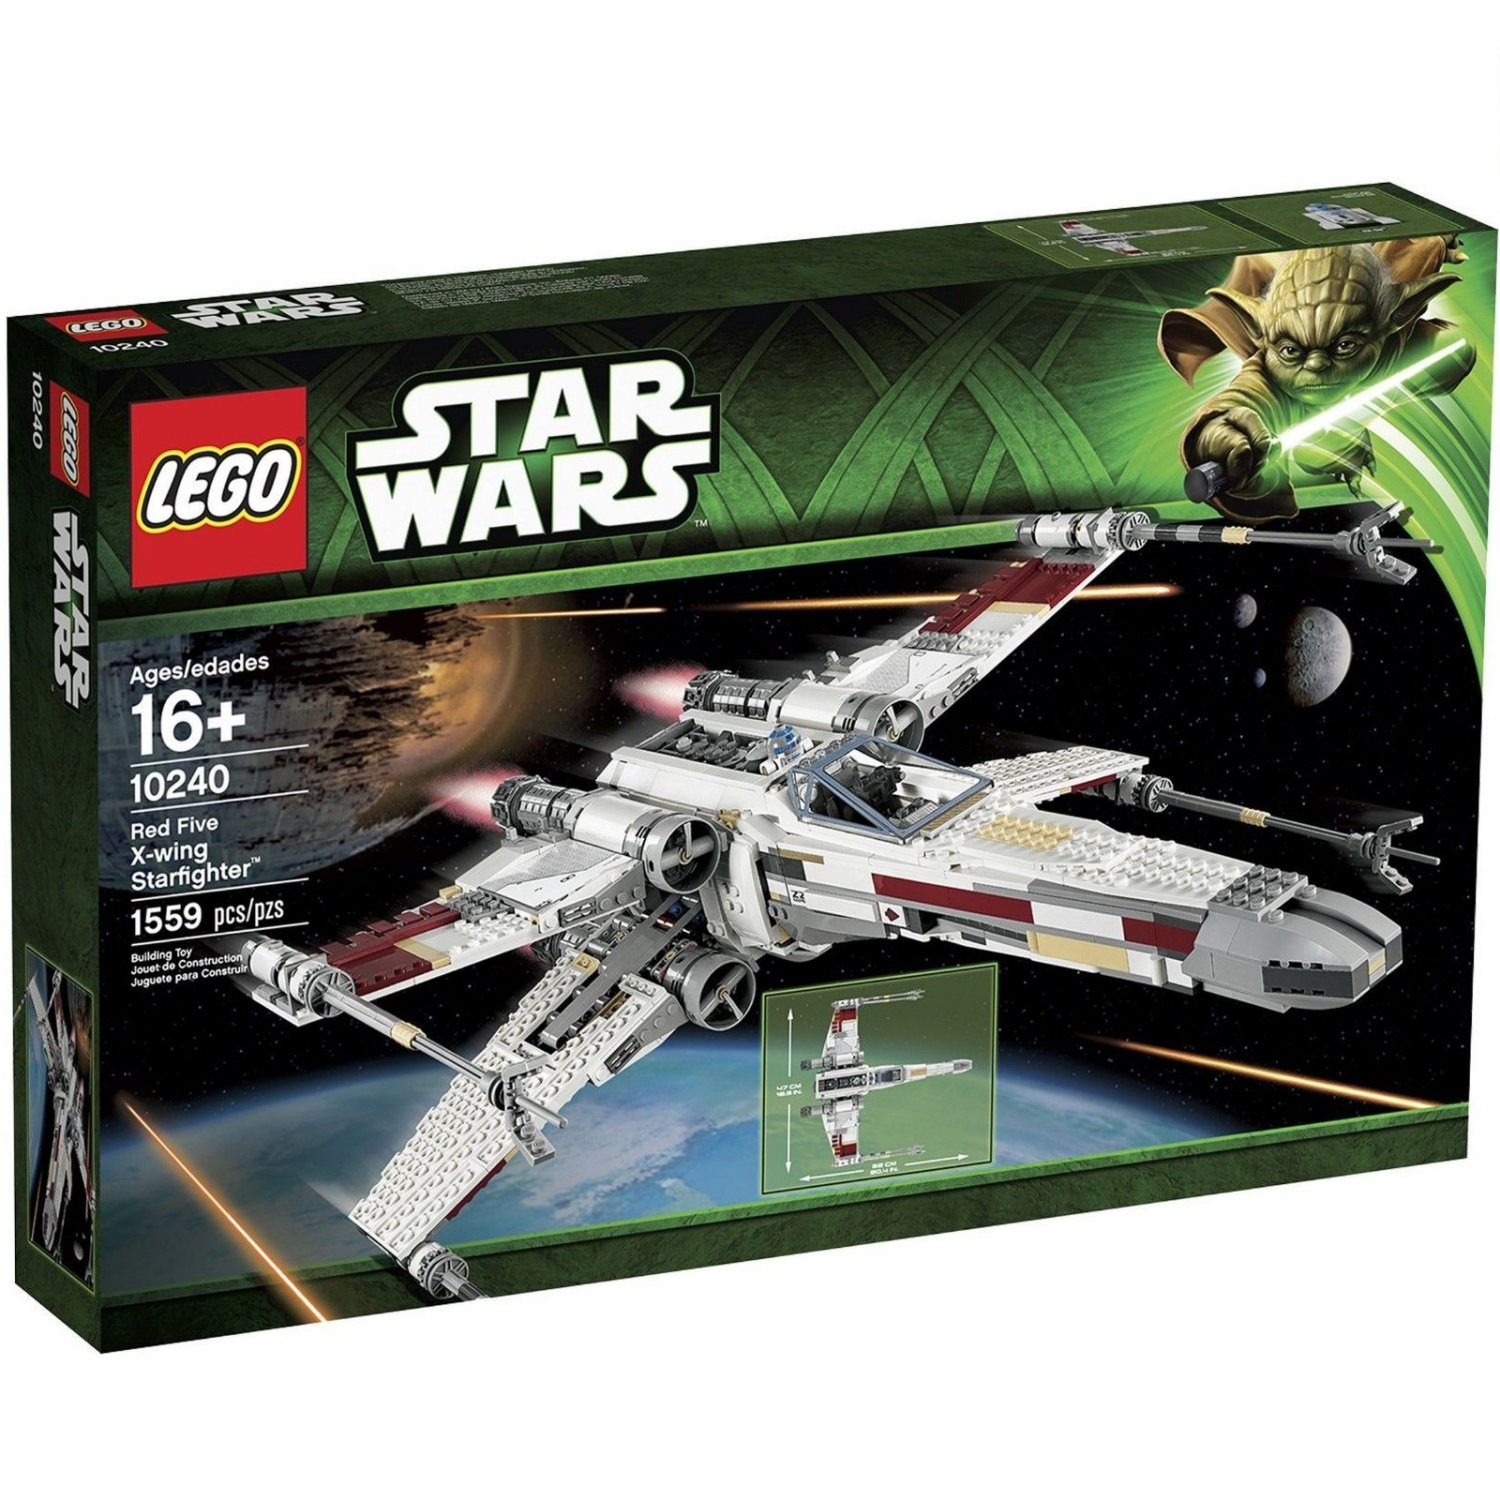 10240 Lego Star Wars Red Five X-wing Starfighter